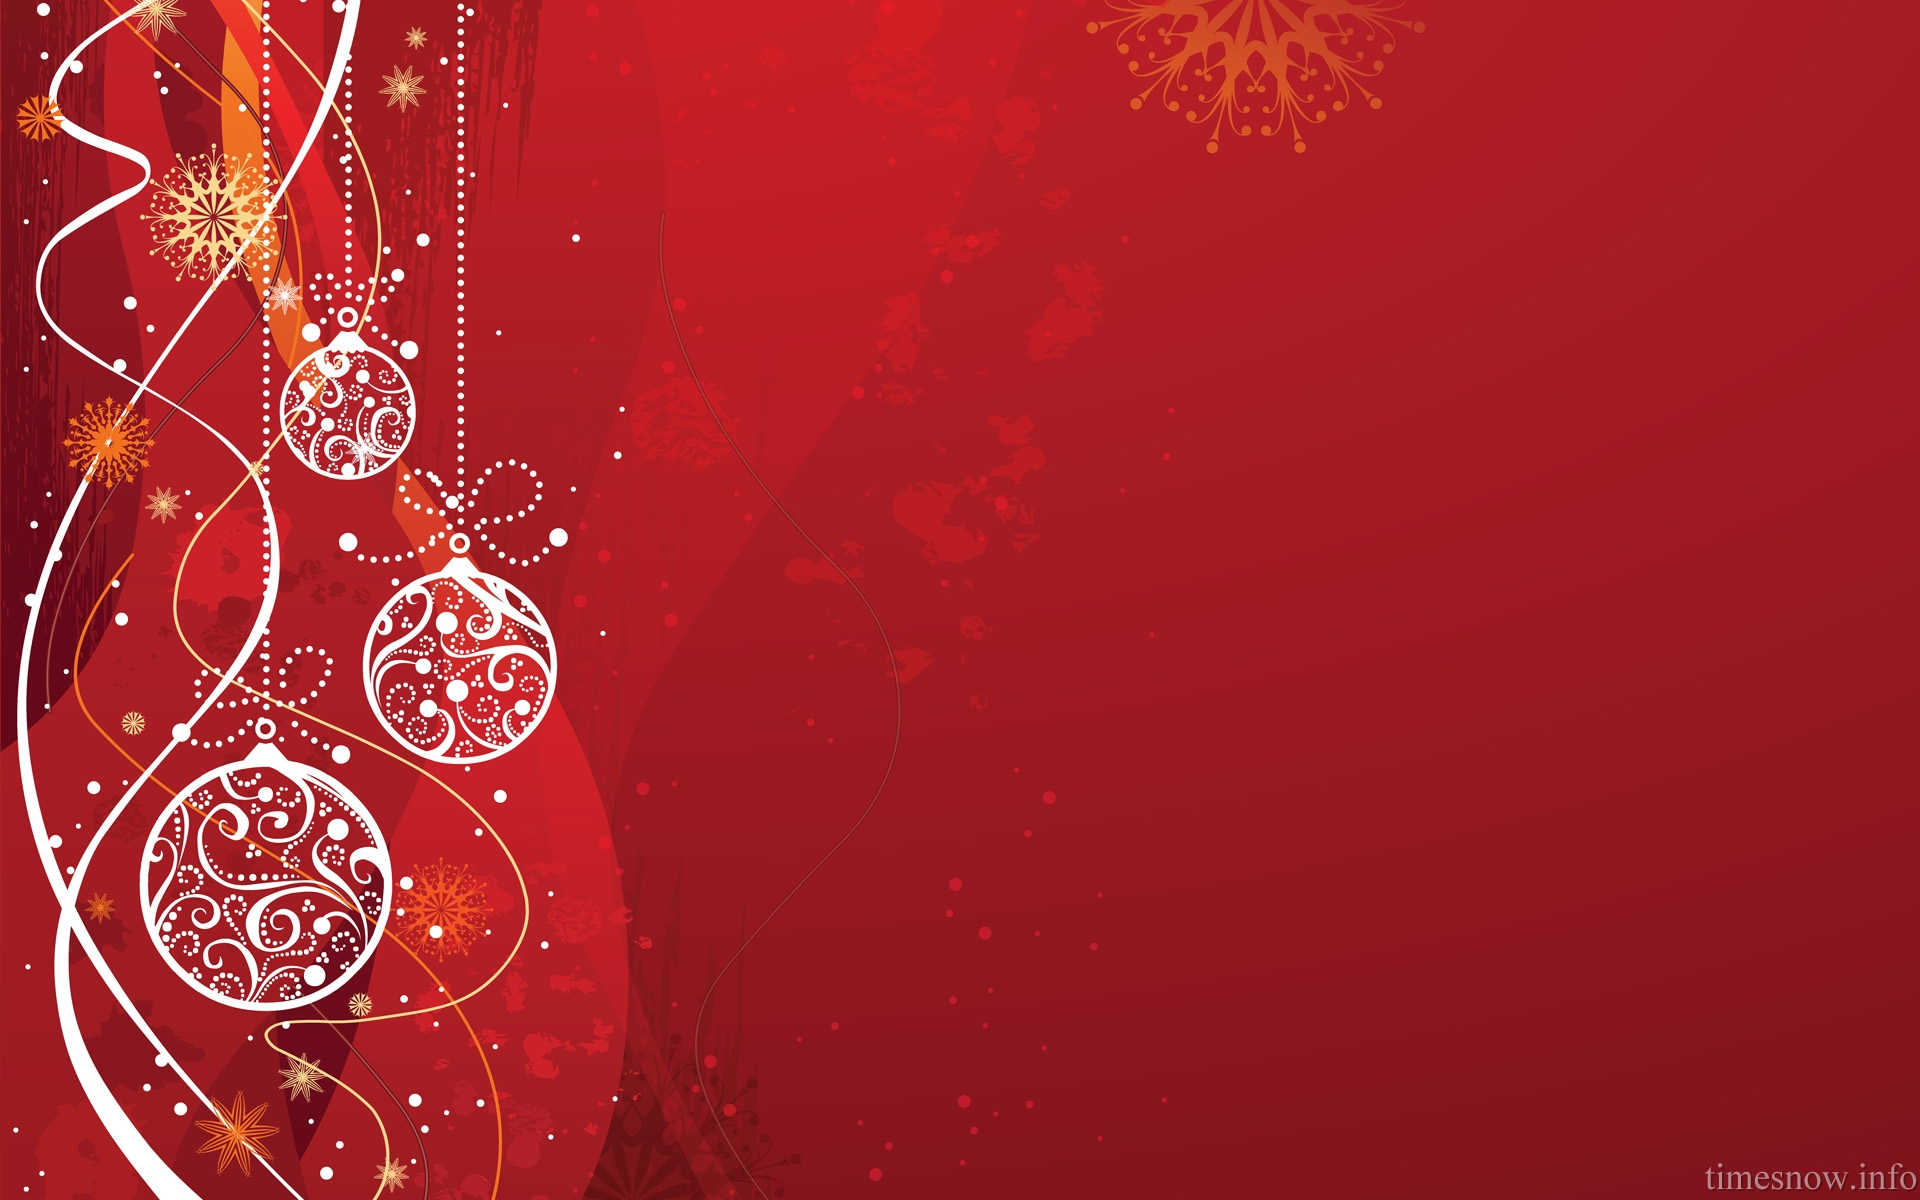 Red Holiday Backgrounds